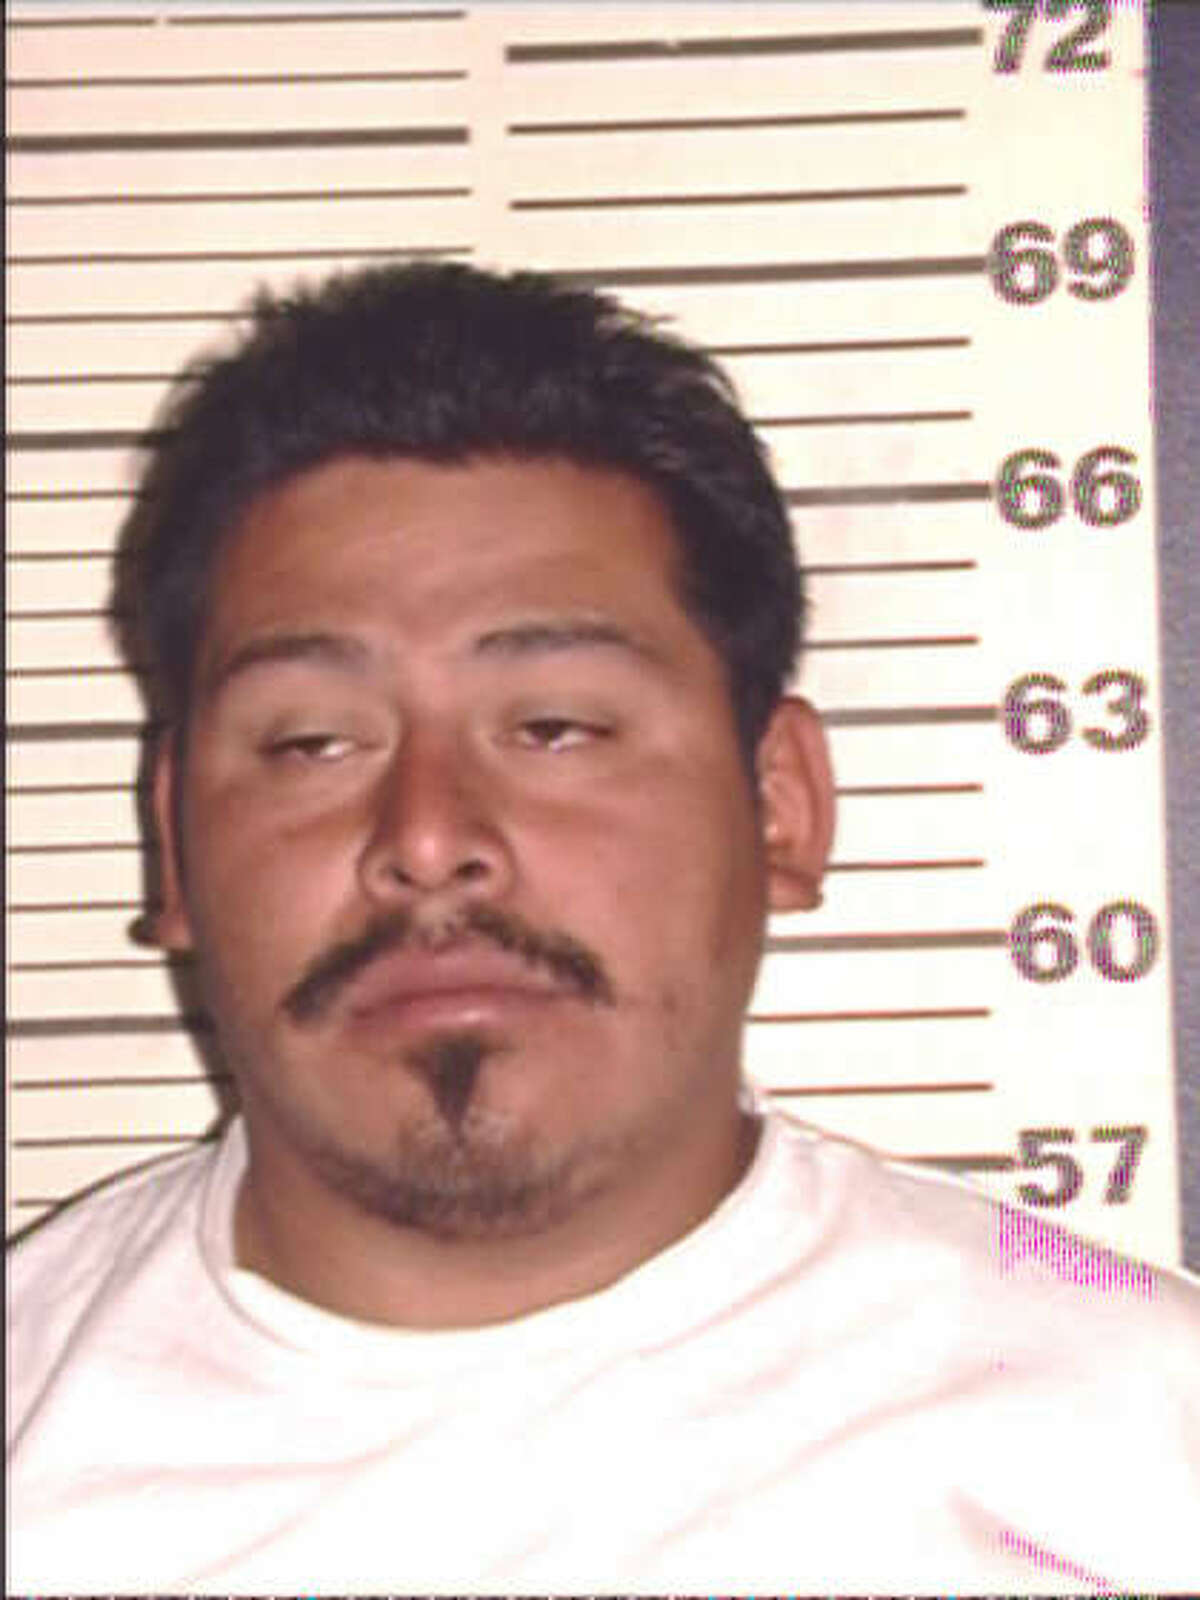 Bexar County mugshot from Feb. 2, 2002. Gregorio Santos, who has collected nine DWI convictions in Bexar County, was sentenced today to 25 years in prison Sept. 25, 2014.